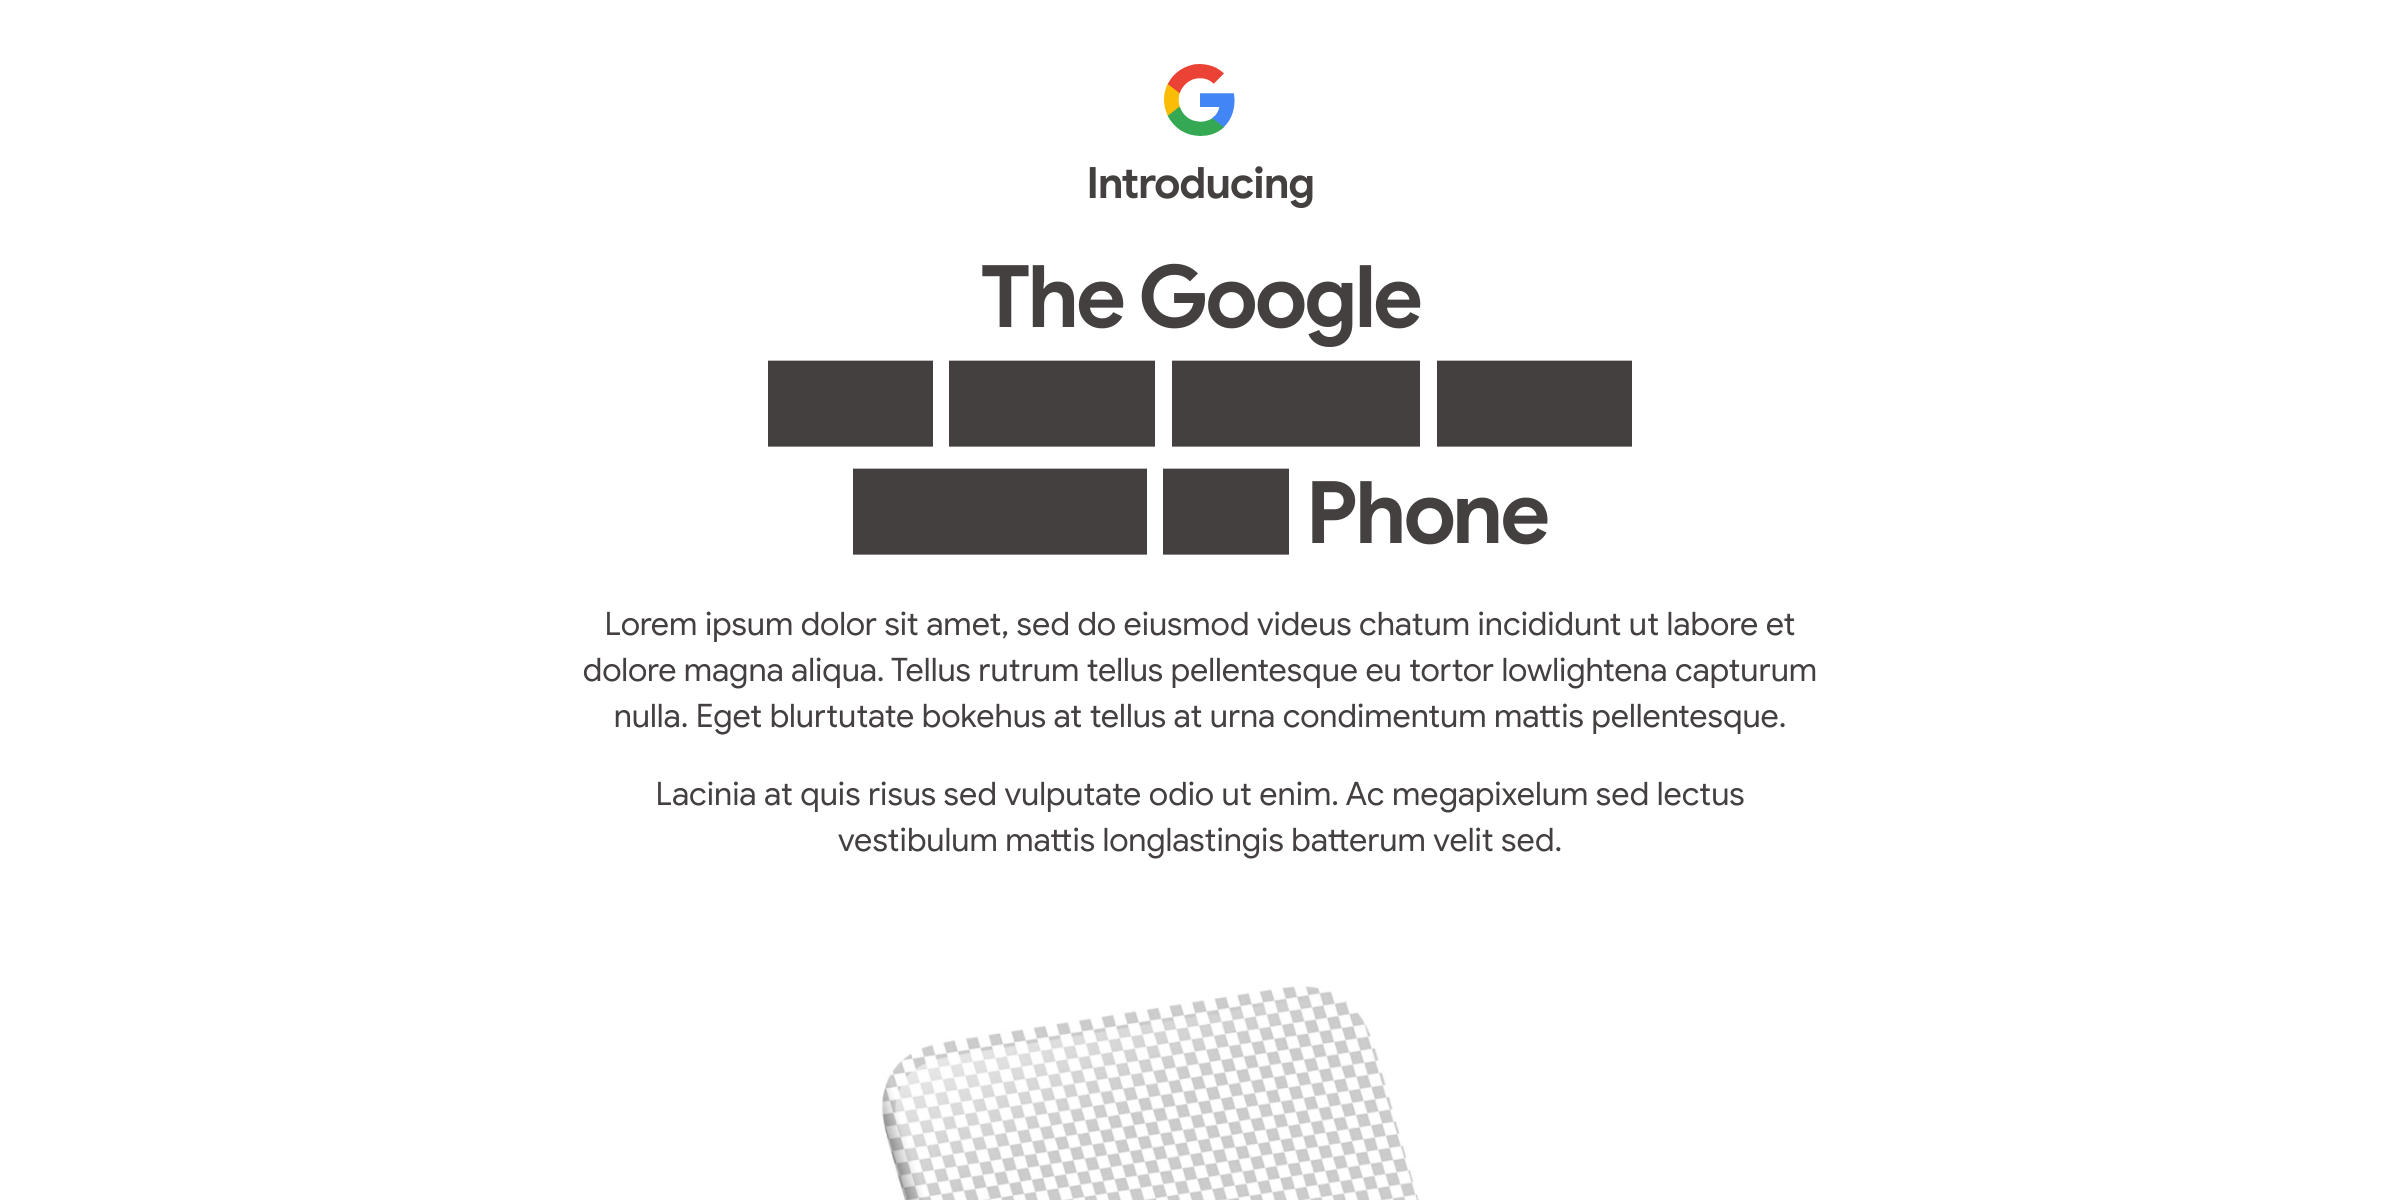 Google teases Pixel 4a unveil on August 3 with 'lorem ipsum' – 9to5Google